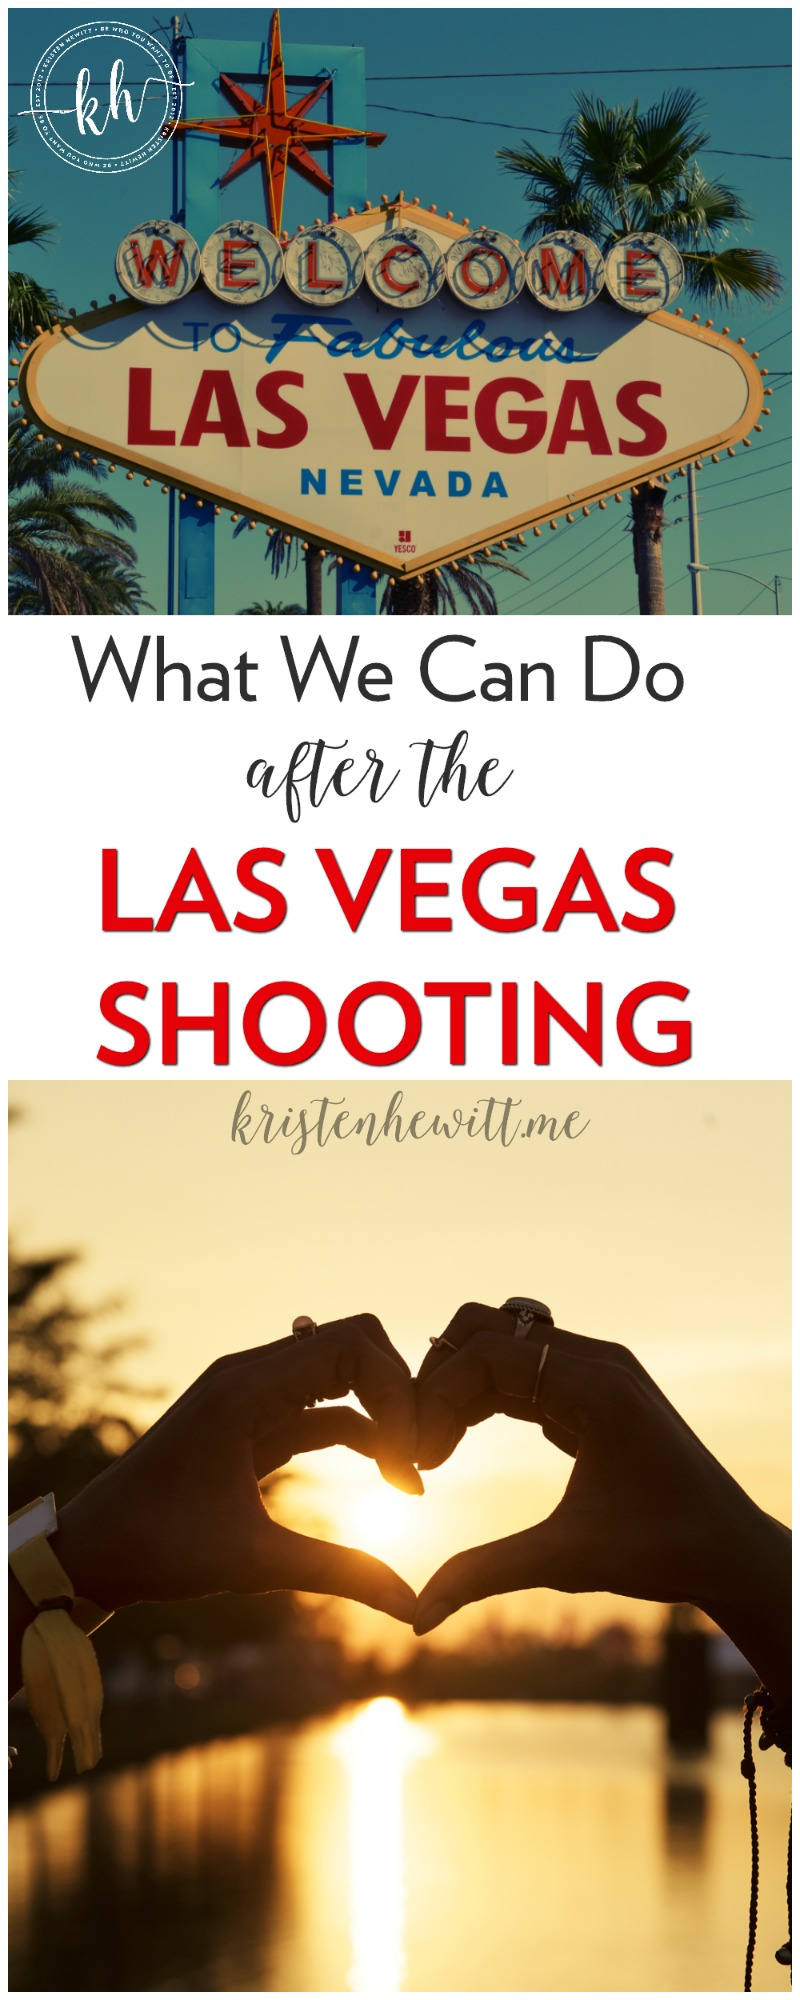 It happened again, this time a shooting in Las Vegas. But what can we do? This. Here's what we can do after the Las Vegas Shooting.